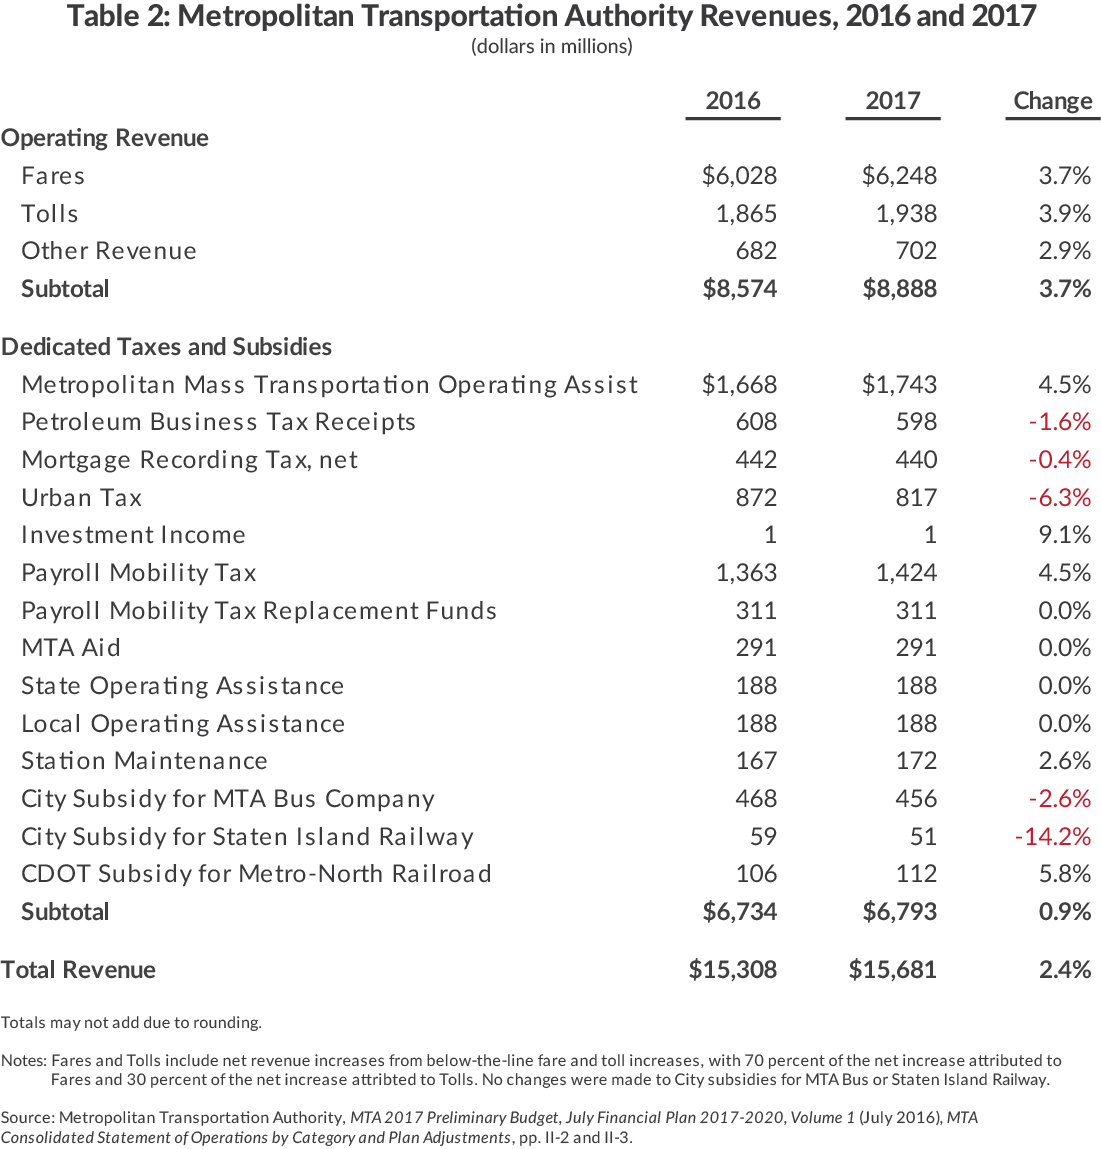 Table 2: Metropolitan Transportation Authority Revenues, 2016 and 2017